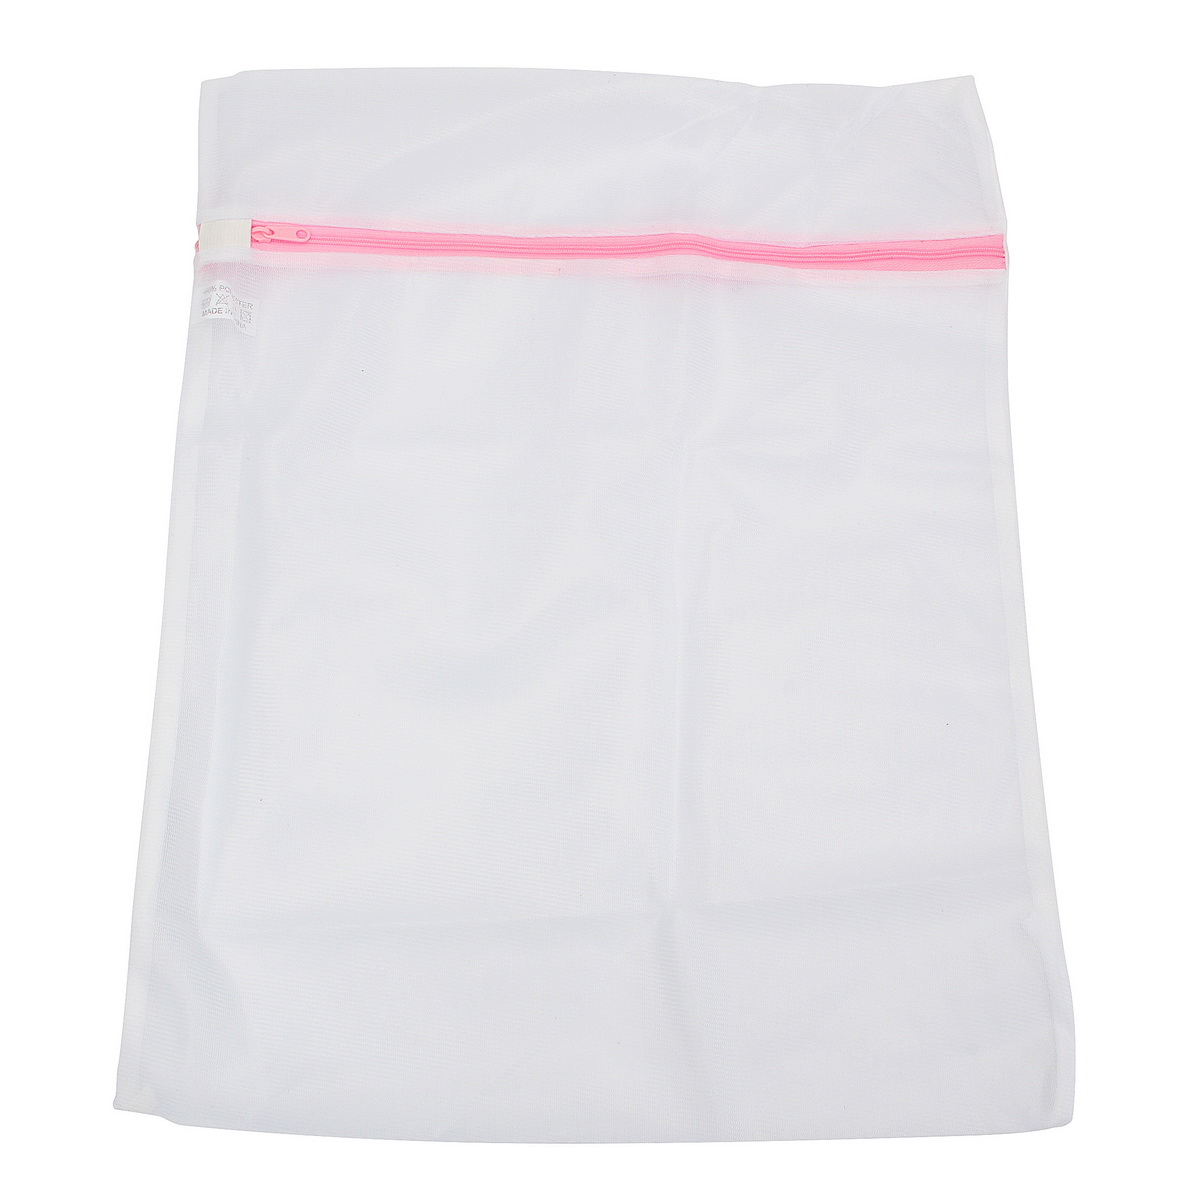 6pcs Clothes Protection Bags Laundry Bags Underwear Bra Laundry Bags Clothes Wash Kit Socks Mesh Zippered Lingerie Sweater